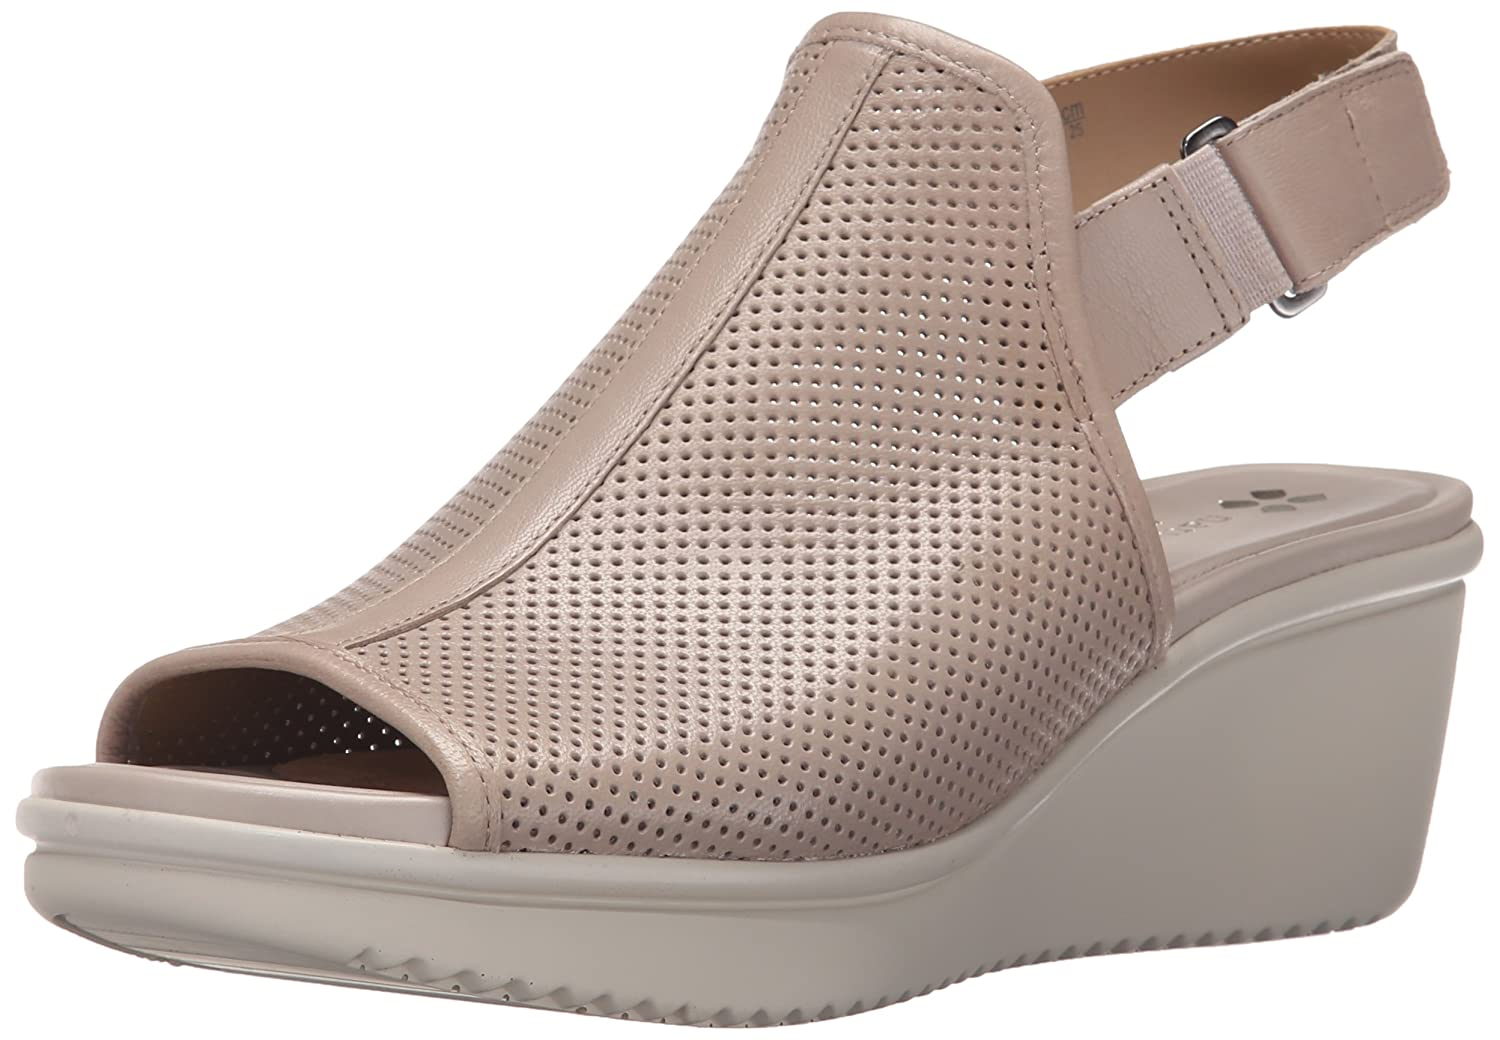 Naturalizer Women's Ardel Wedge Sandal B017ECLKW8 9 W US|Grey